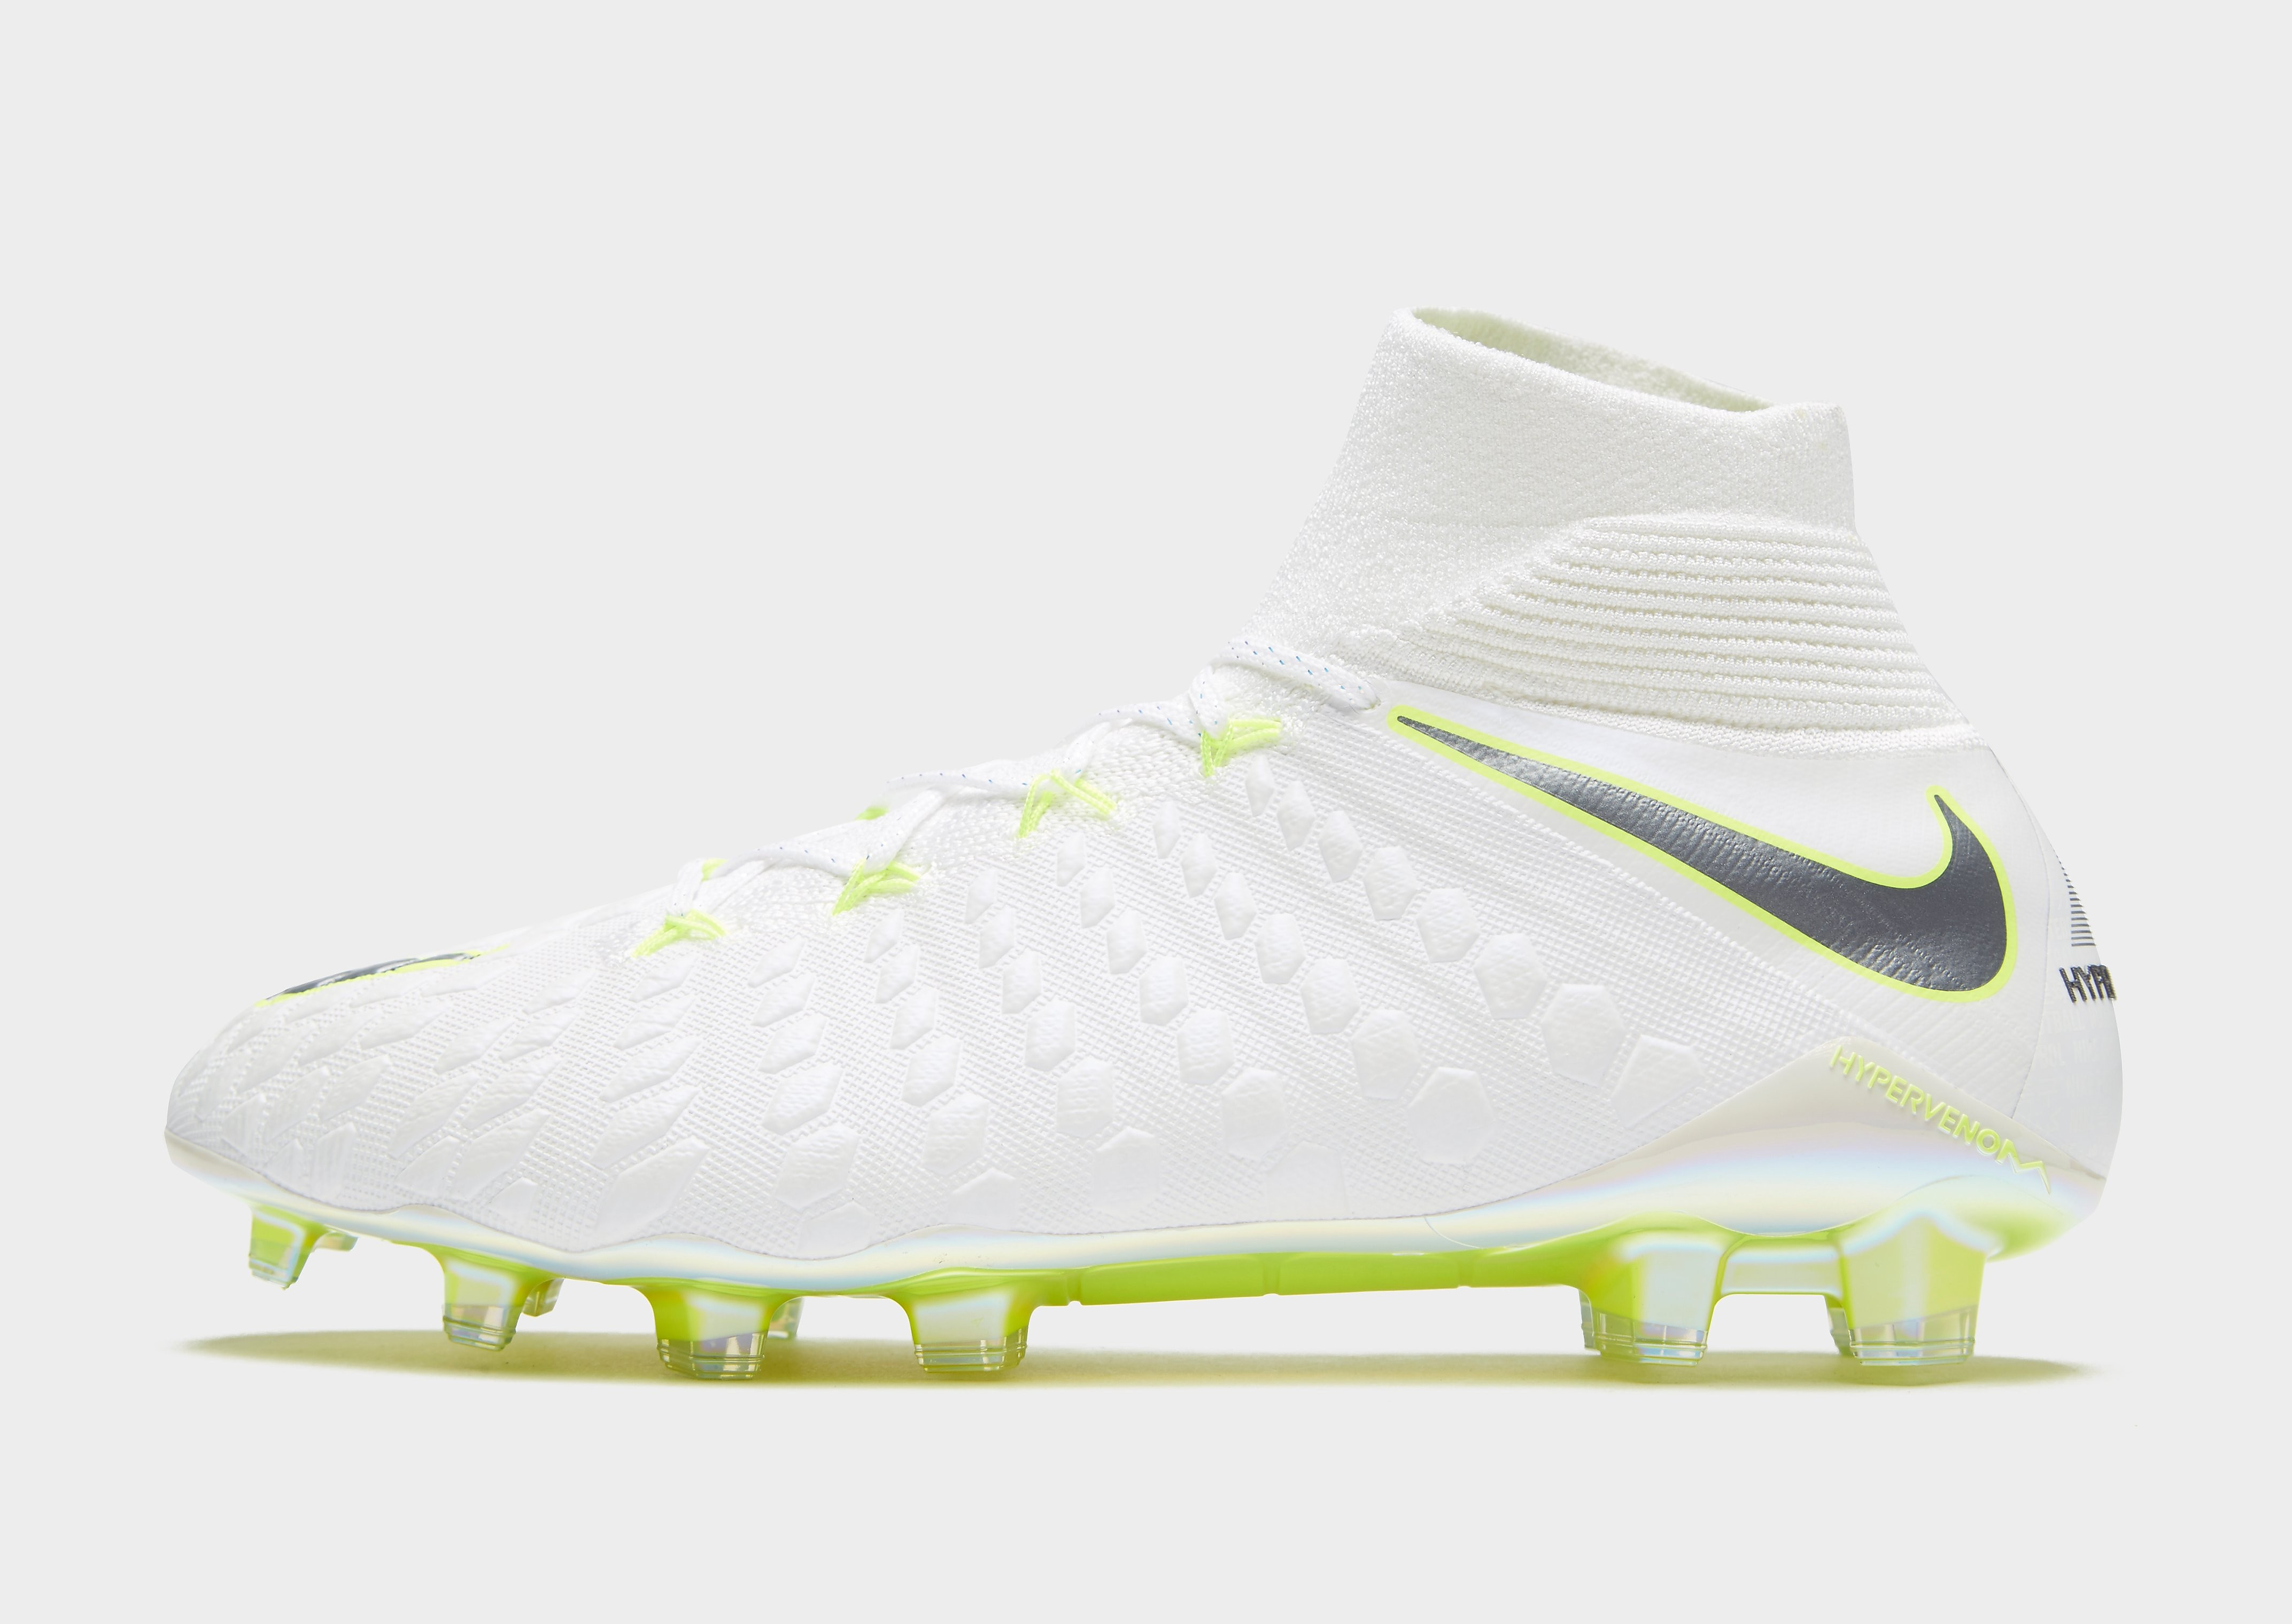 Nike Just Do It Hypervenom Elite Dynamic Fit FG